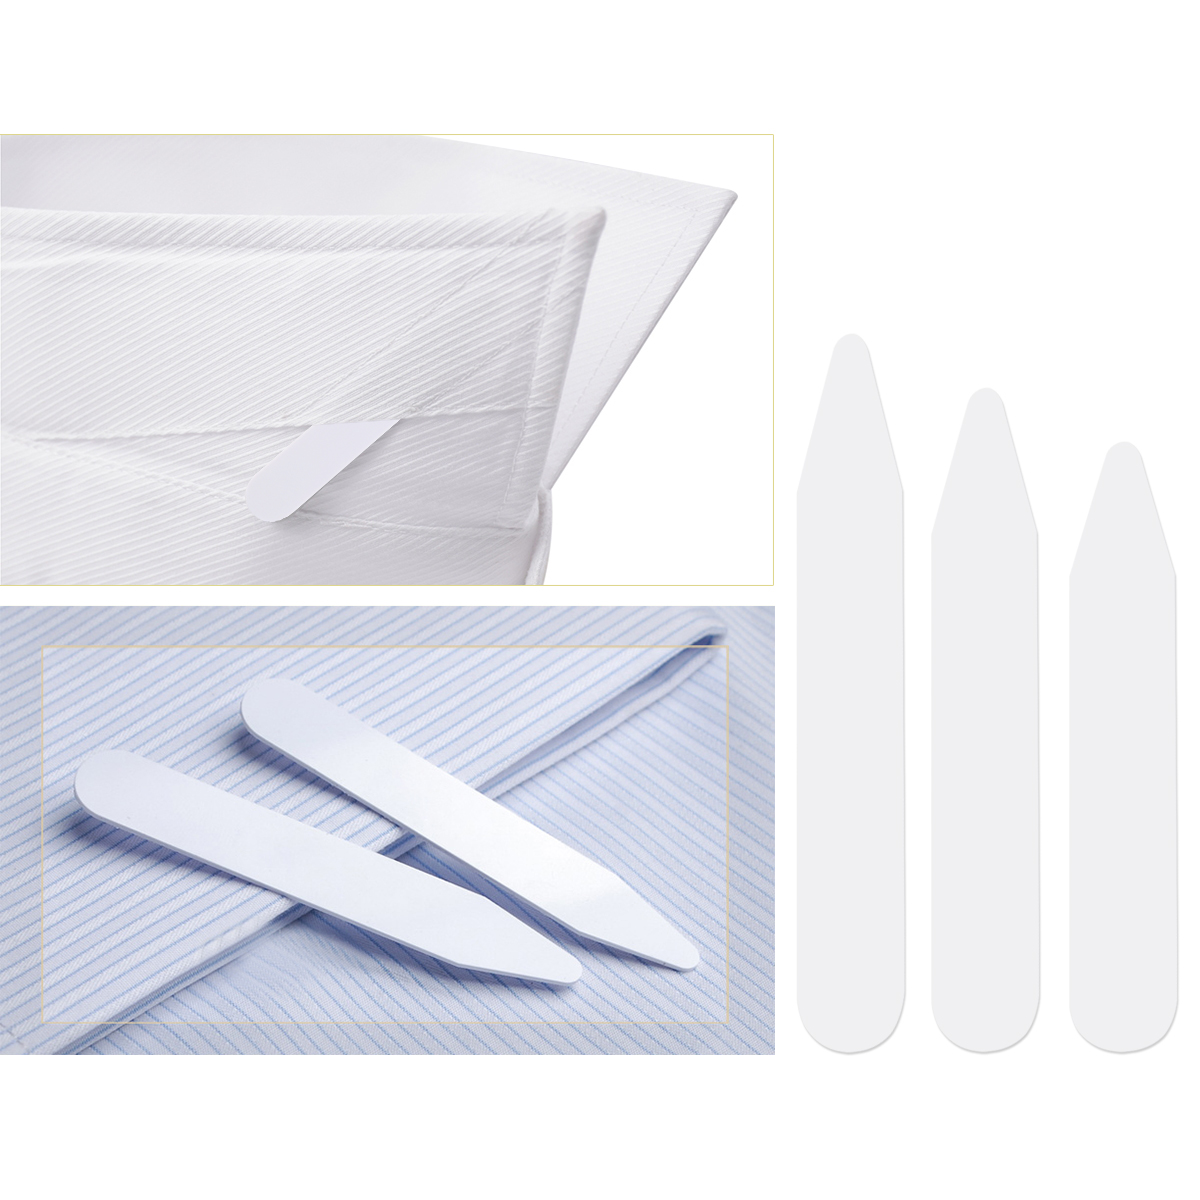 "200pcs Plastic White Shirt Collar Stays Bones Stiffeners 3 Sizes 2.5/"" 3/"" and 2/"""